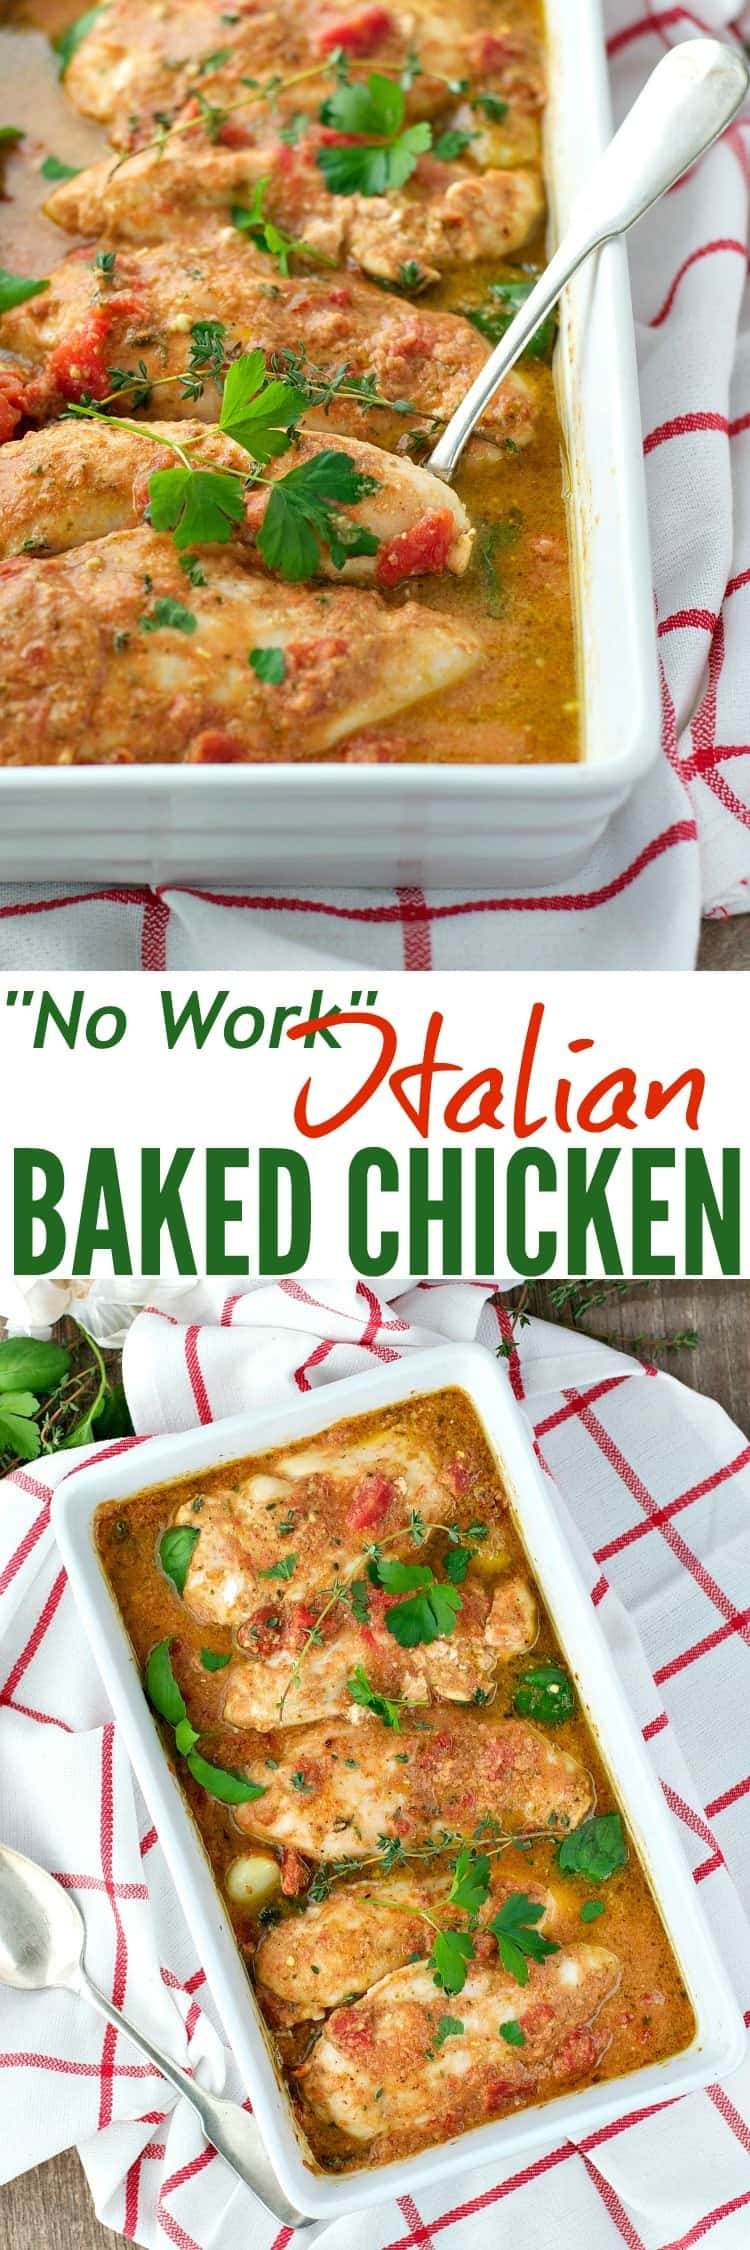 No Work Italian Baked Chicken Is A Fast Healthy And Easy Dinner That Cooks